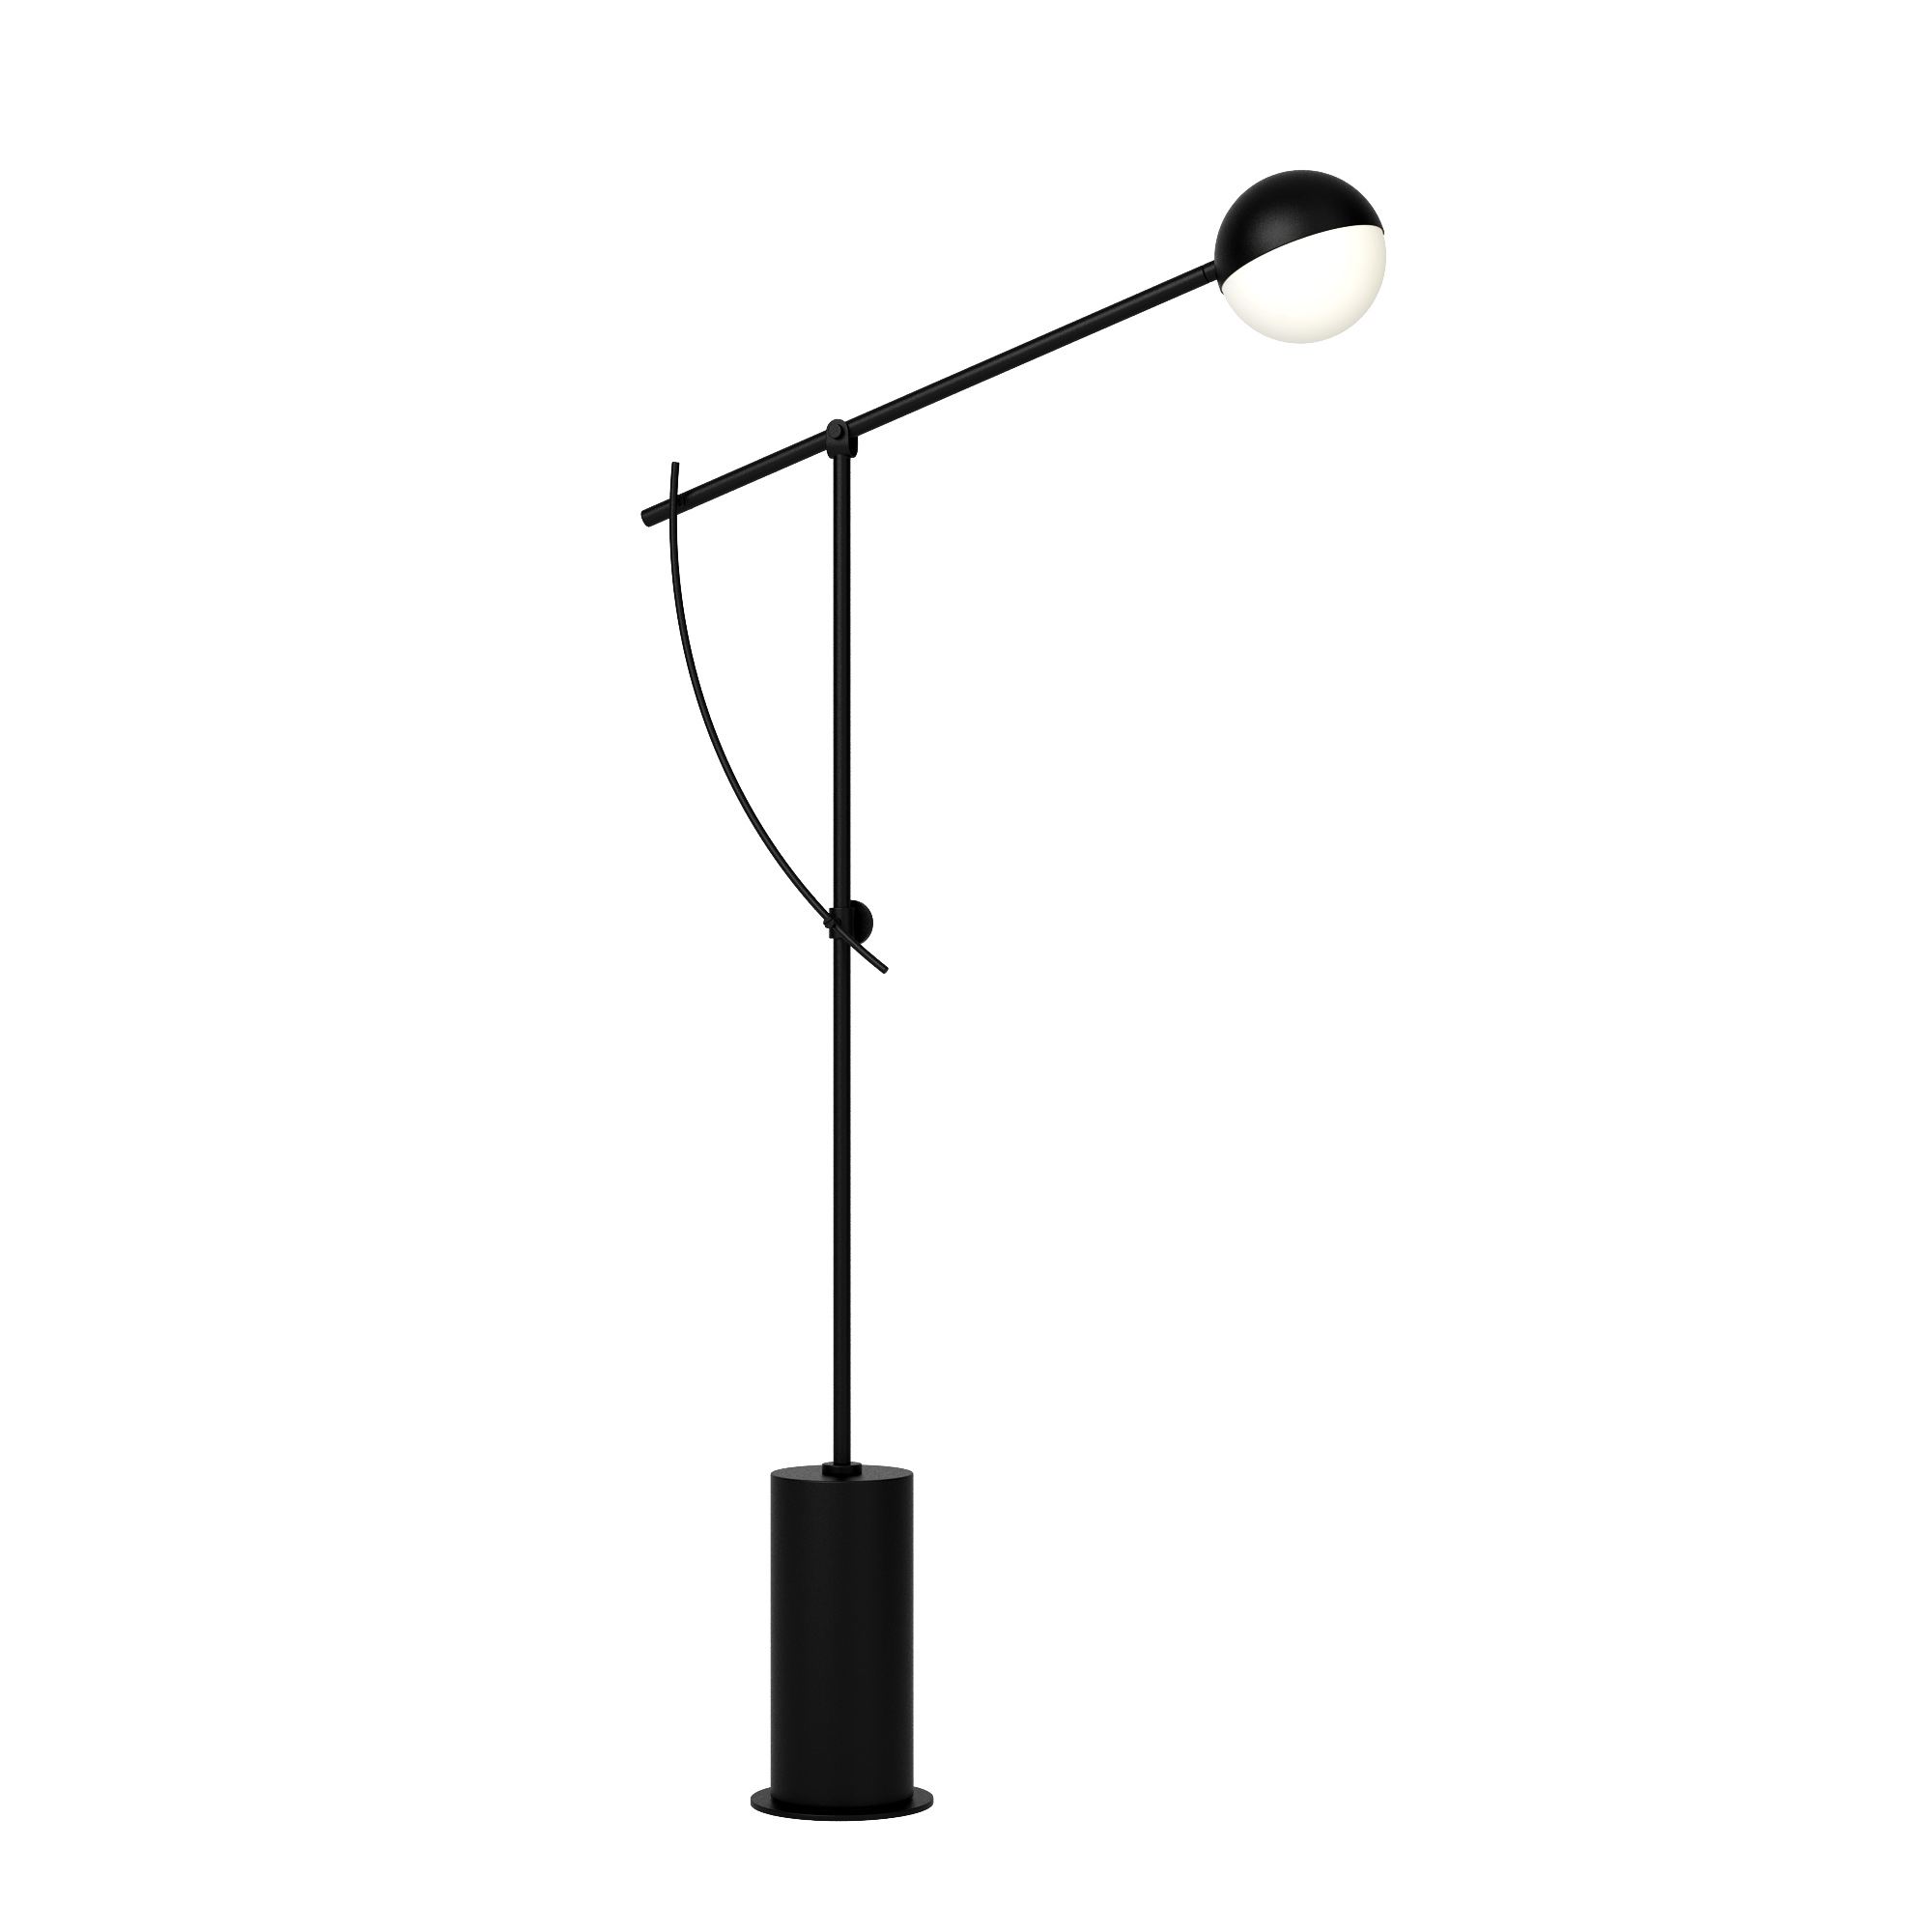 Balancer Floor Lamp by Northern Lighting